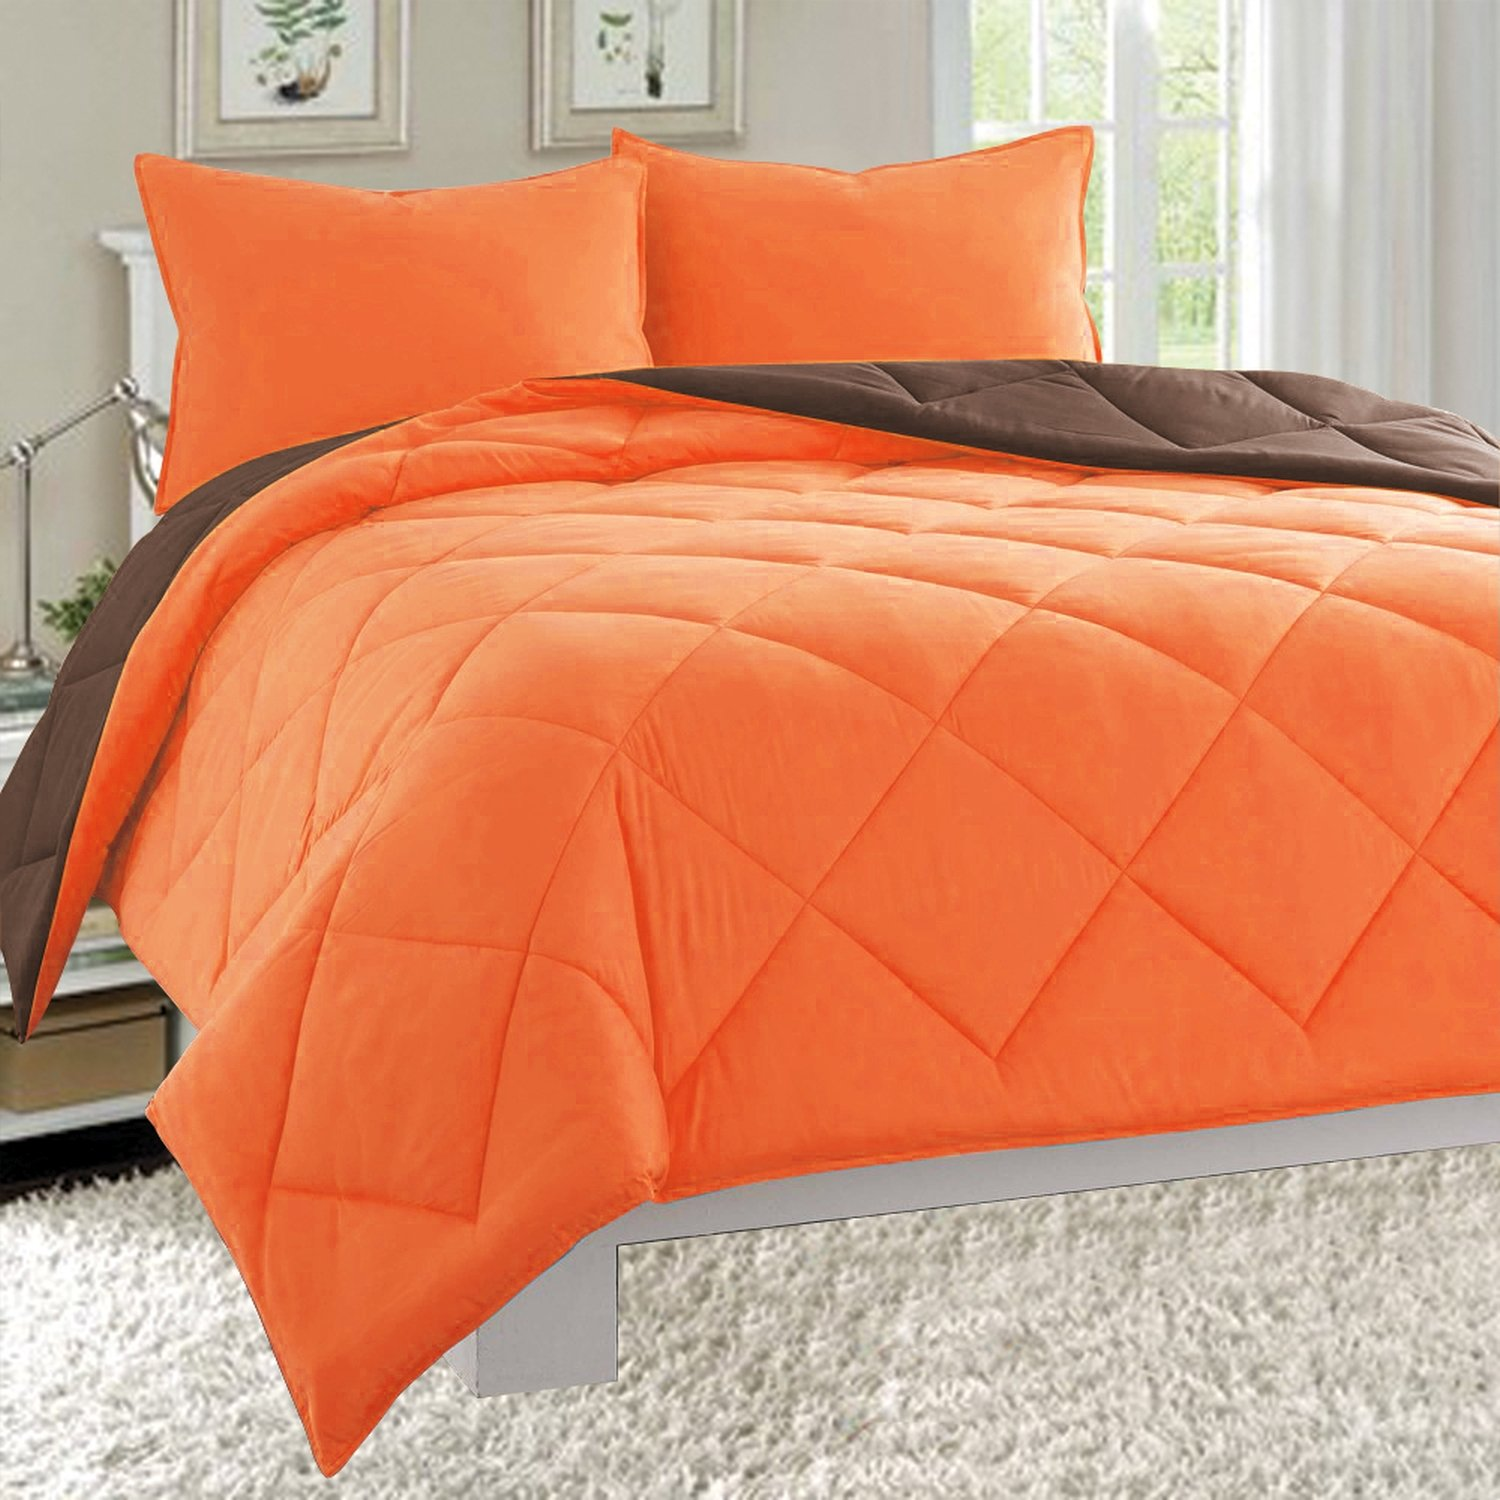 3-Piece Comforter Set, King, Orange/Chocolate